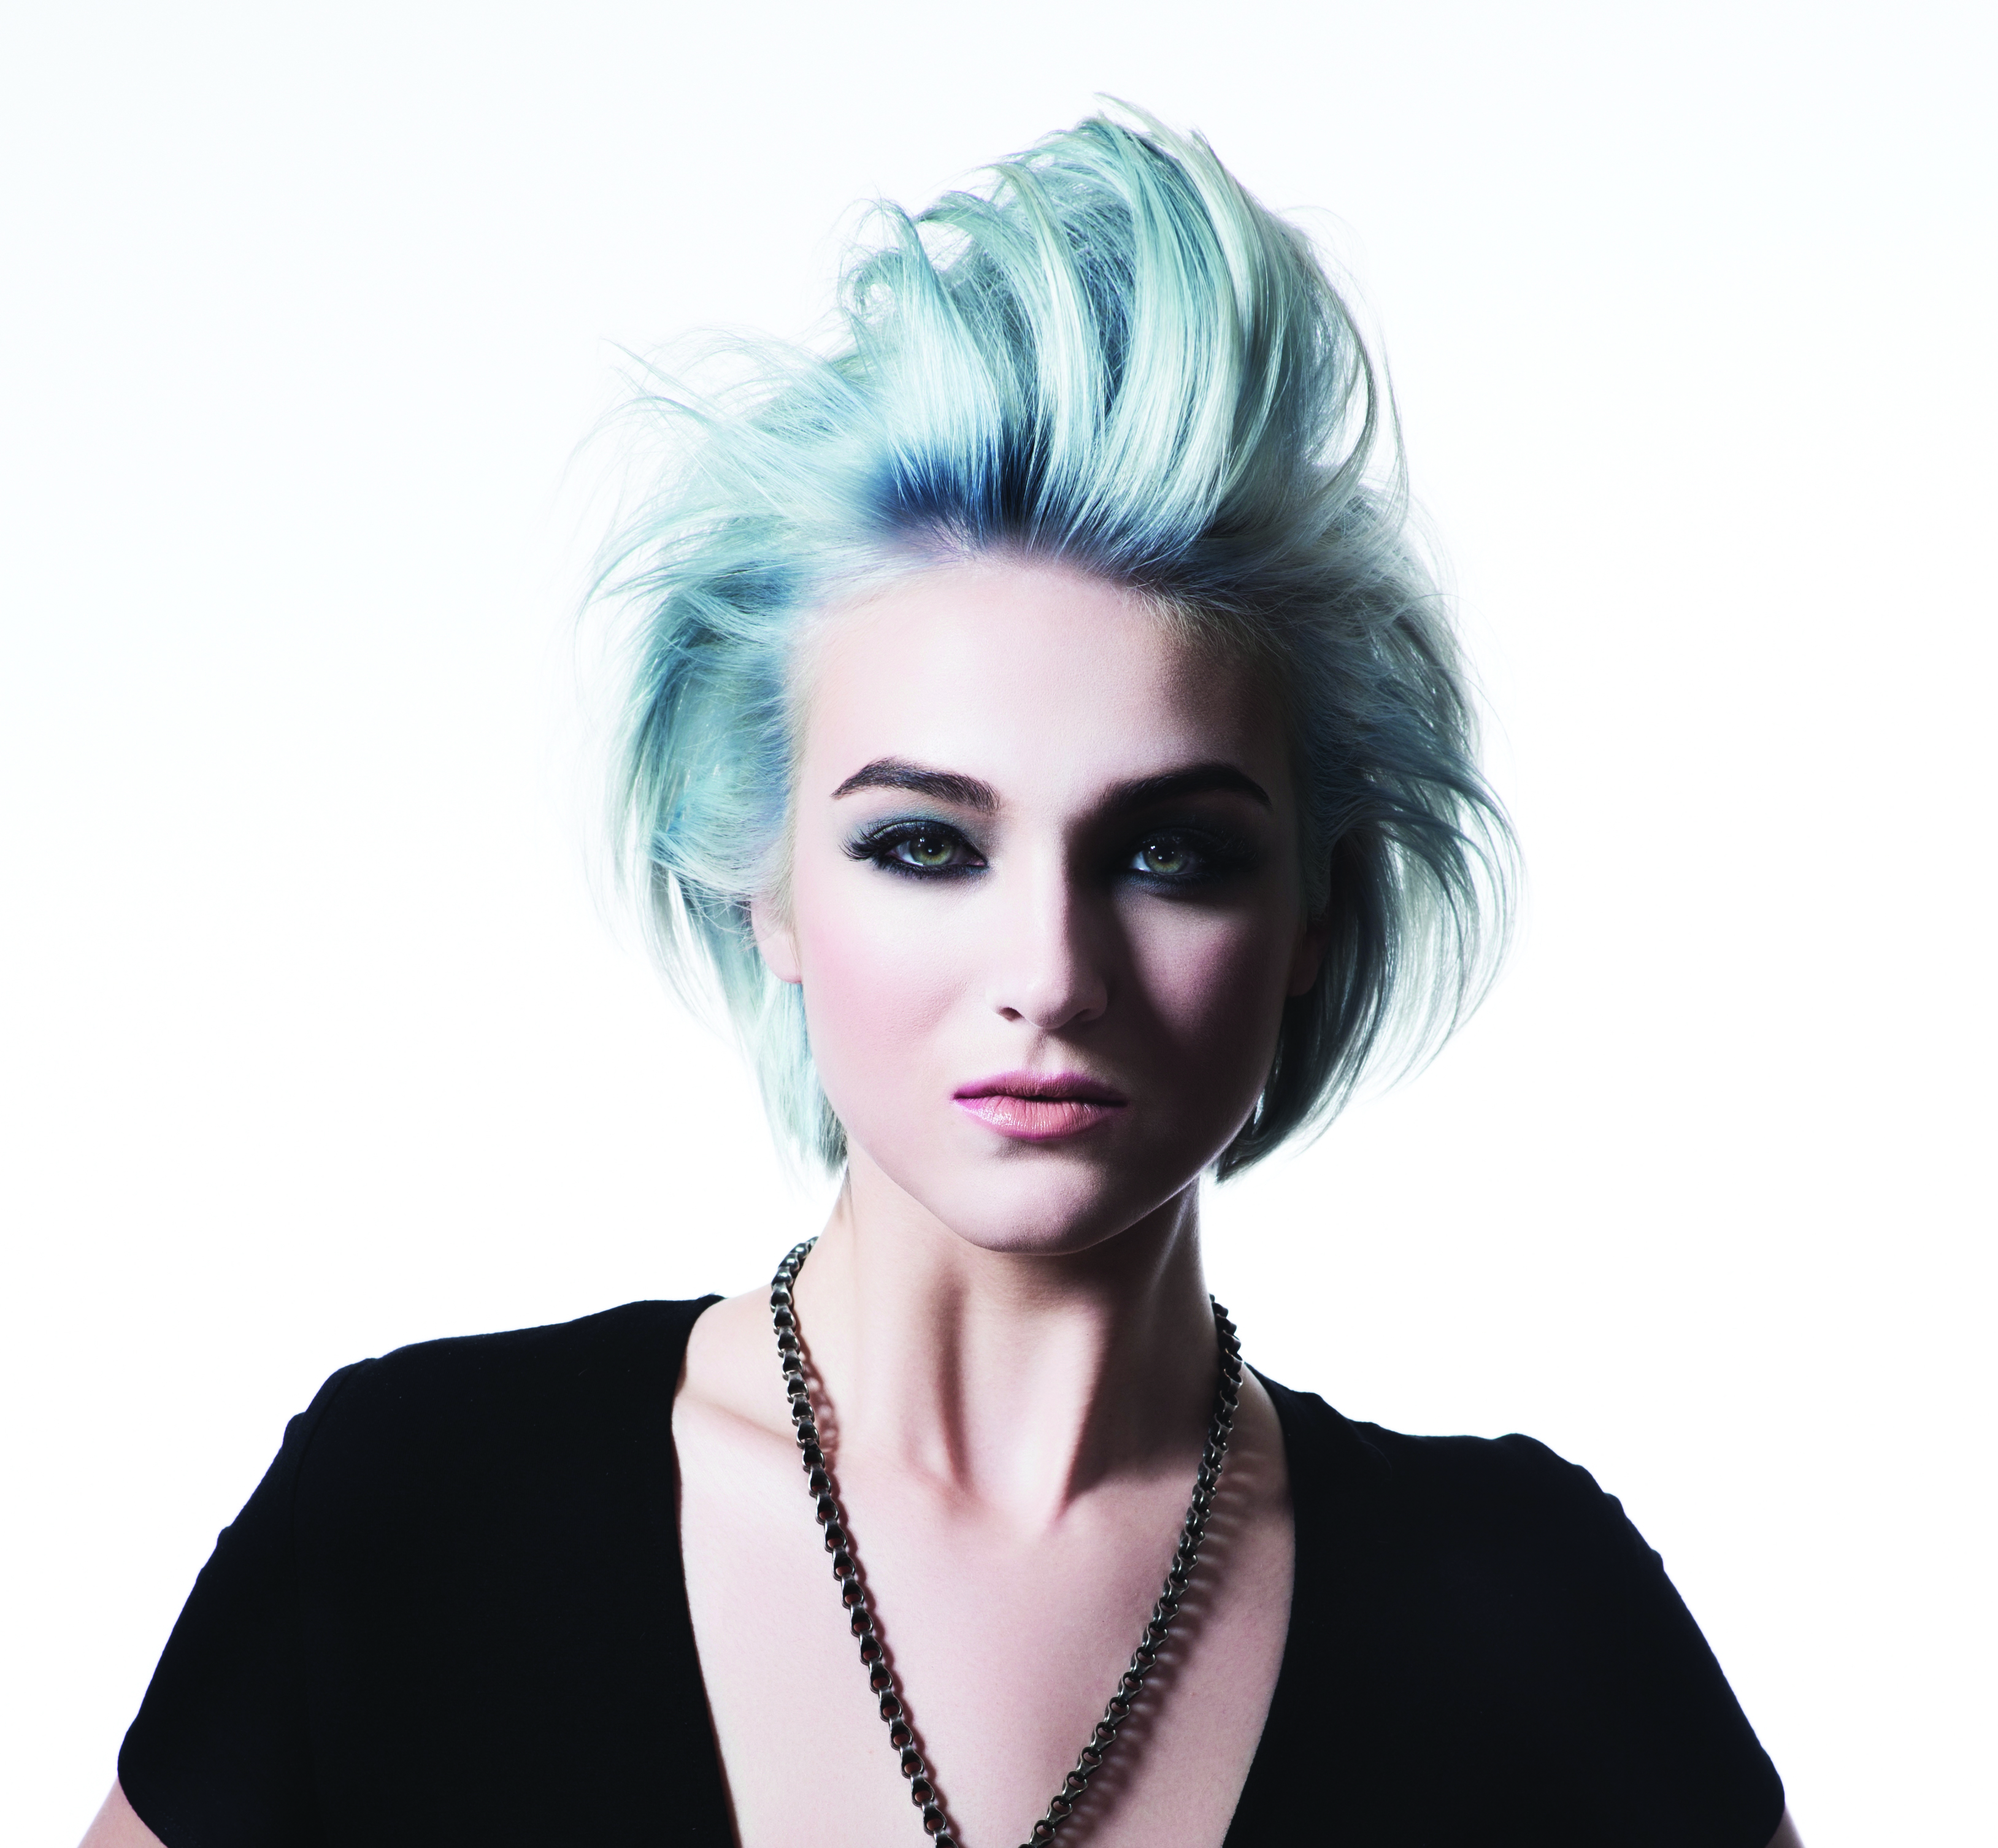 Pomp and circumstance look by L'anza.